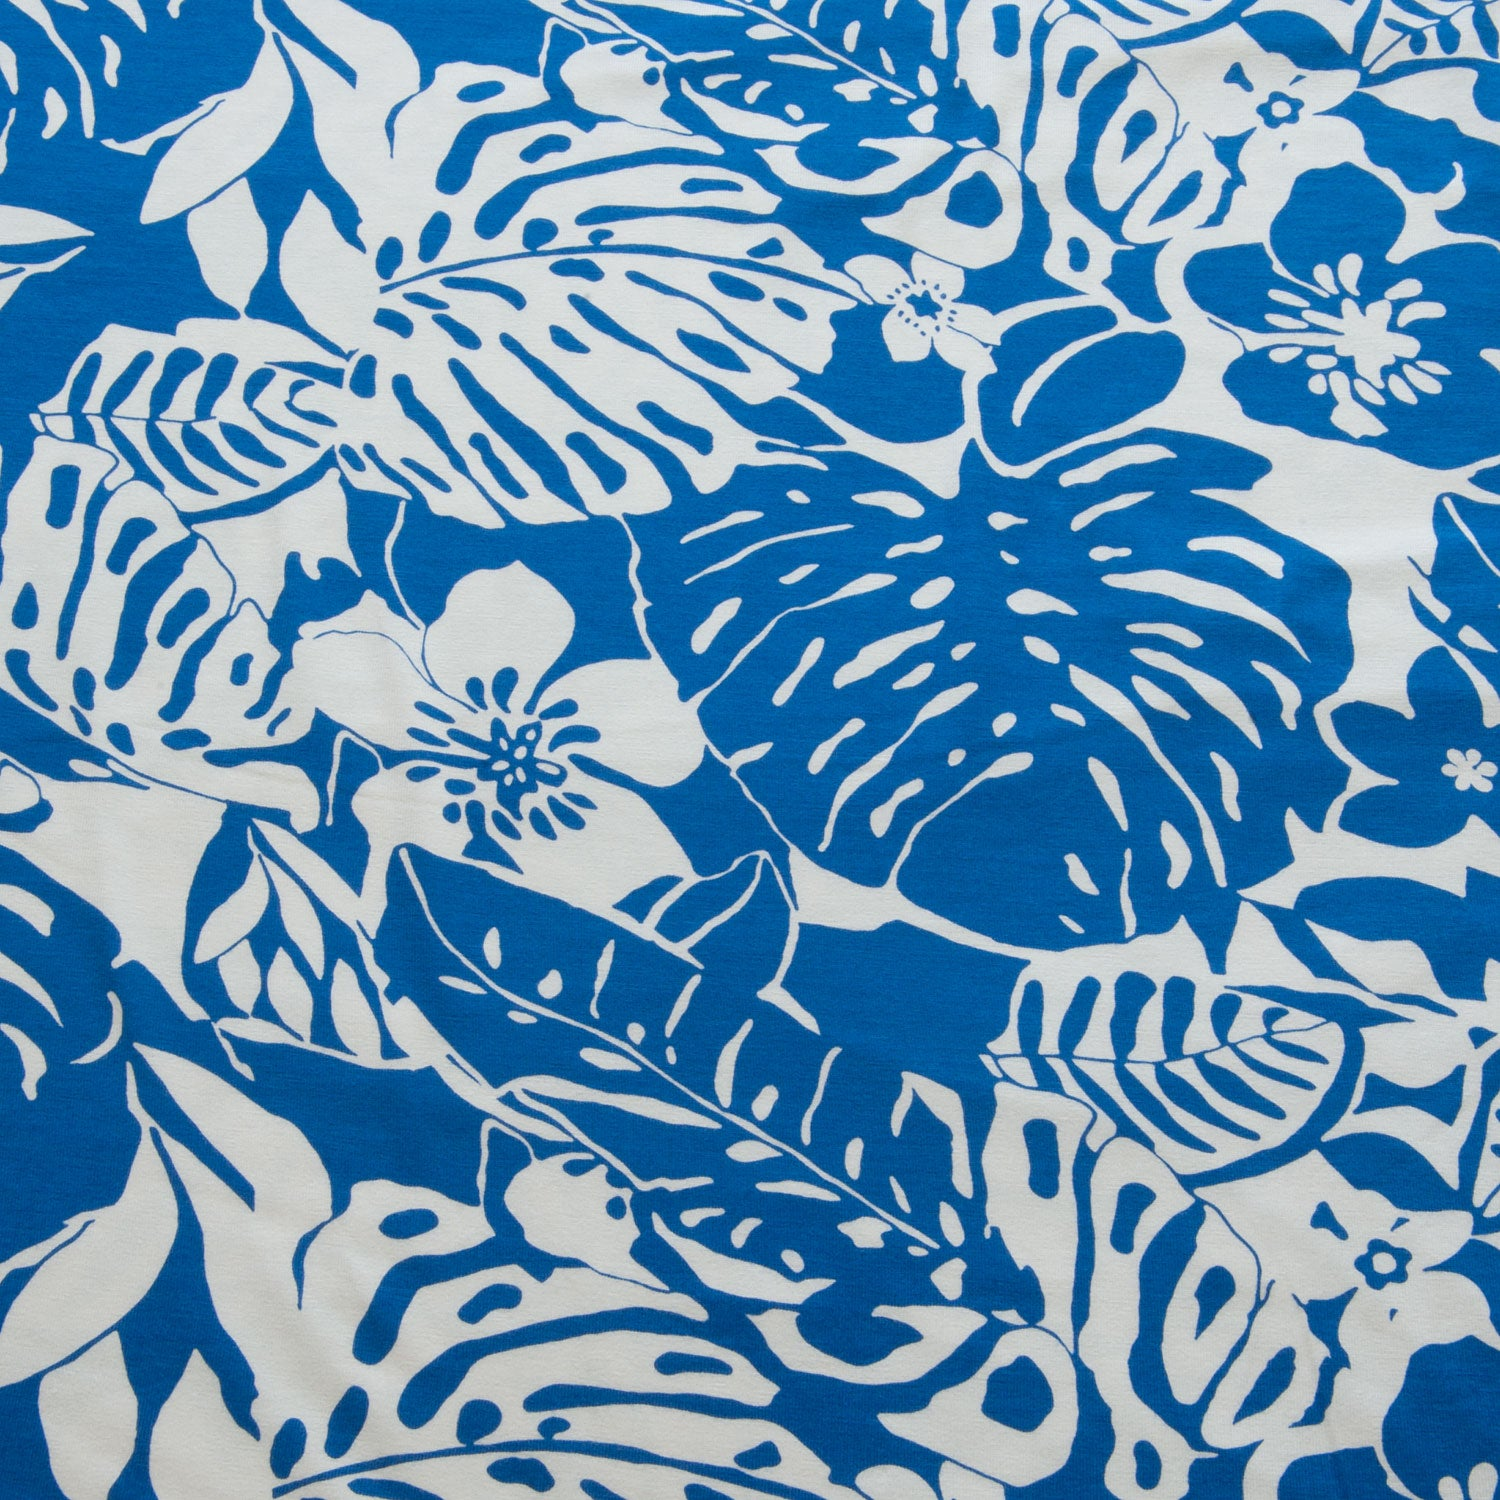 Tropical Viscose Jersey in Blue